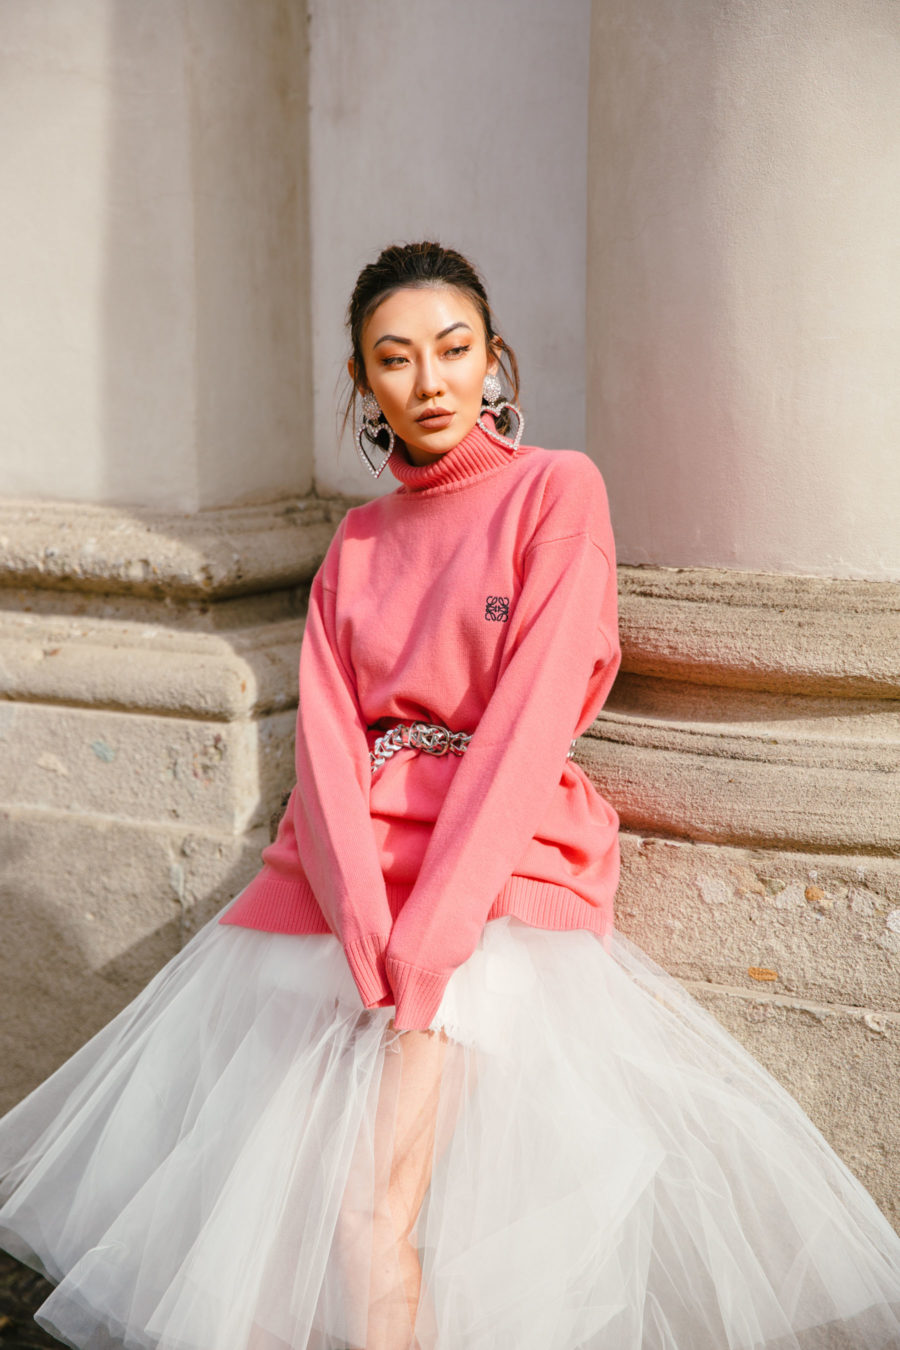 cute thanksgiving outfits by jessica wang - tulle skirt and sweater // Jessica Wang - Notjessfashion.com